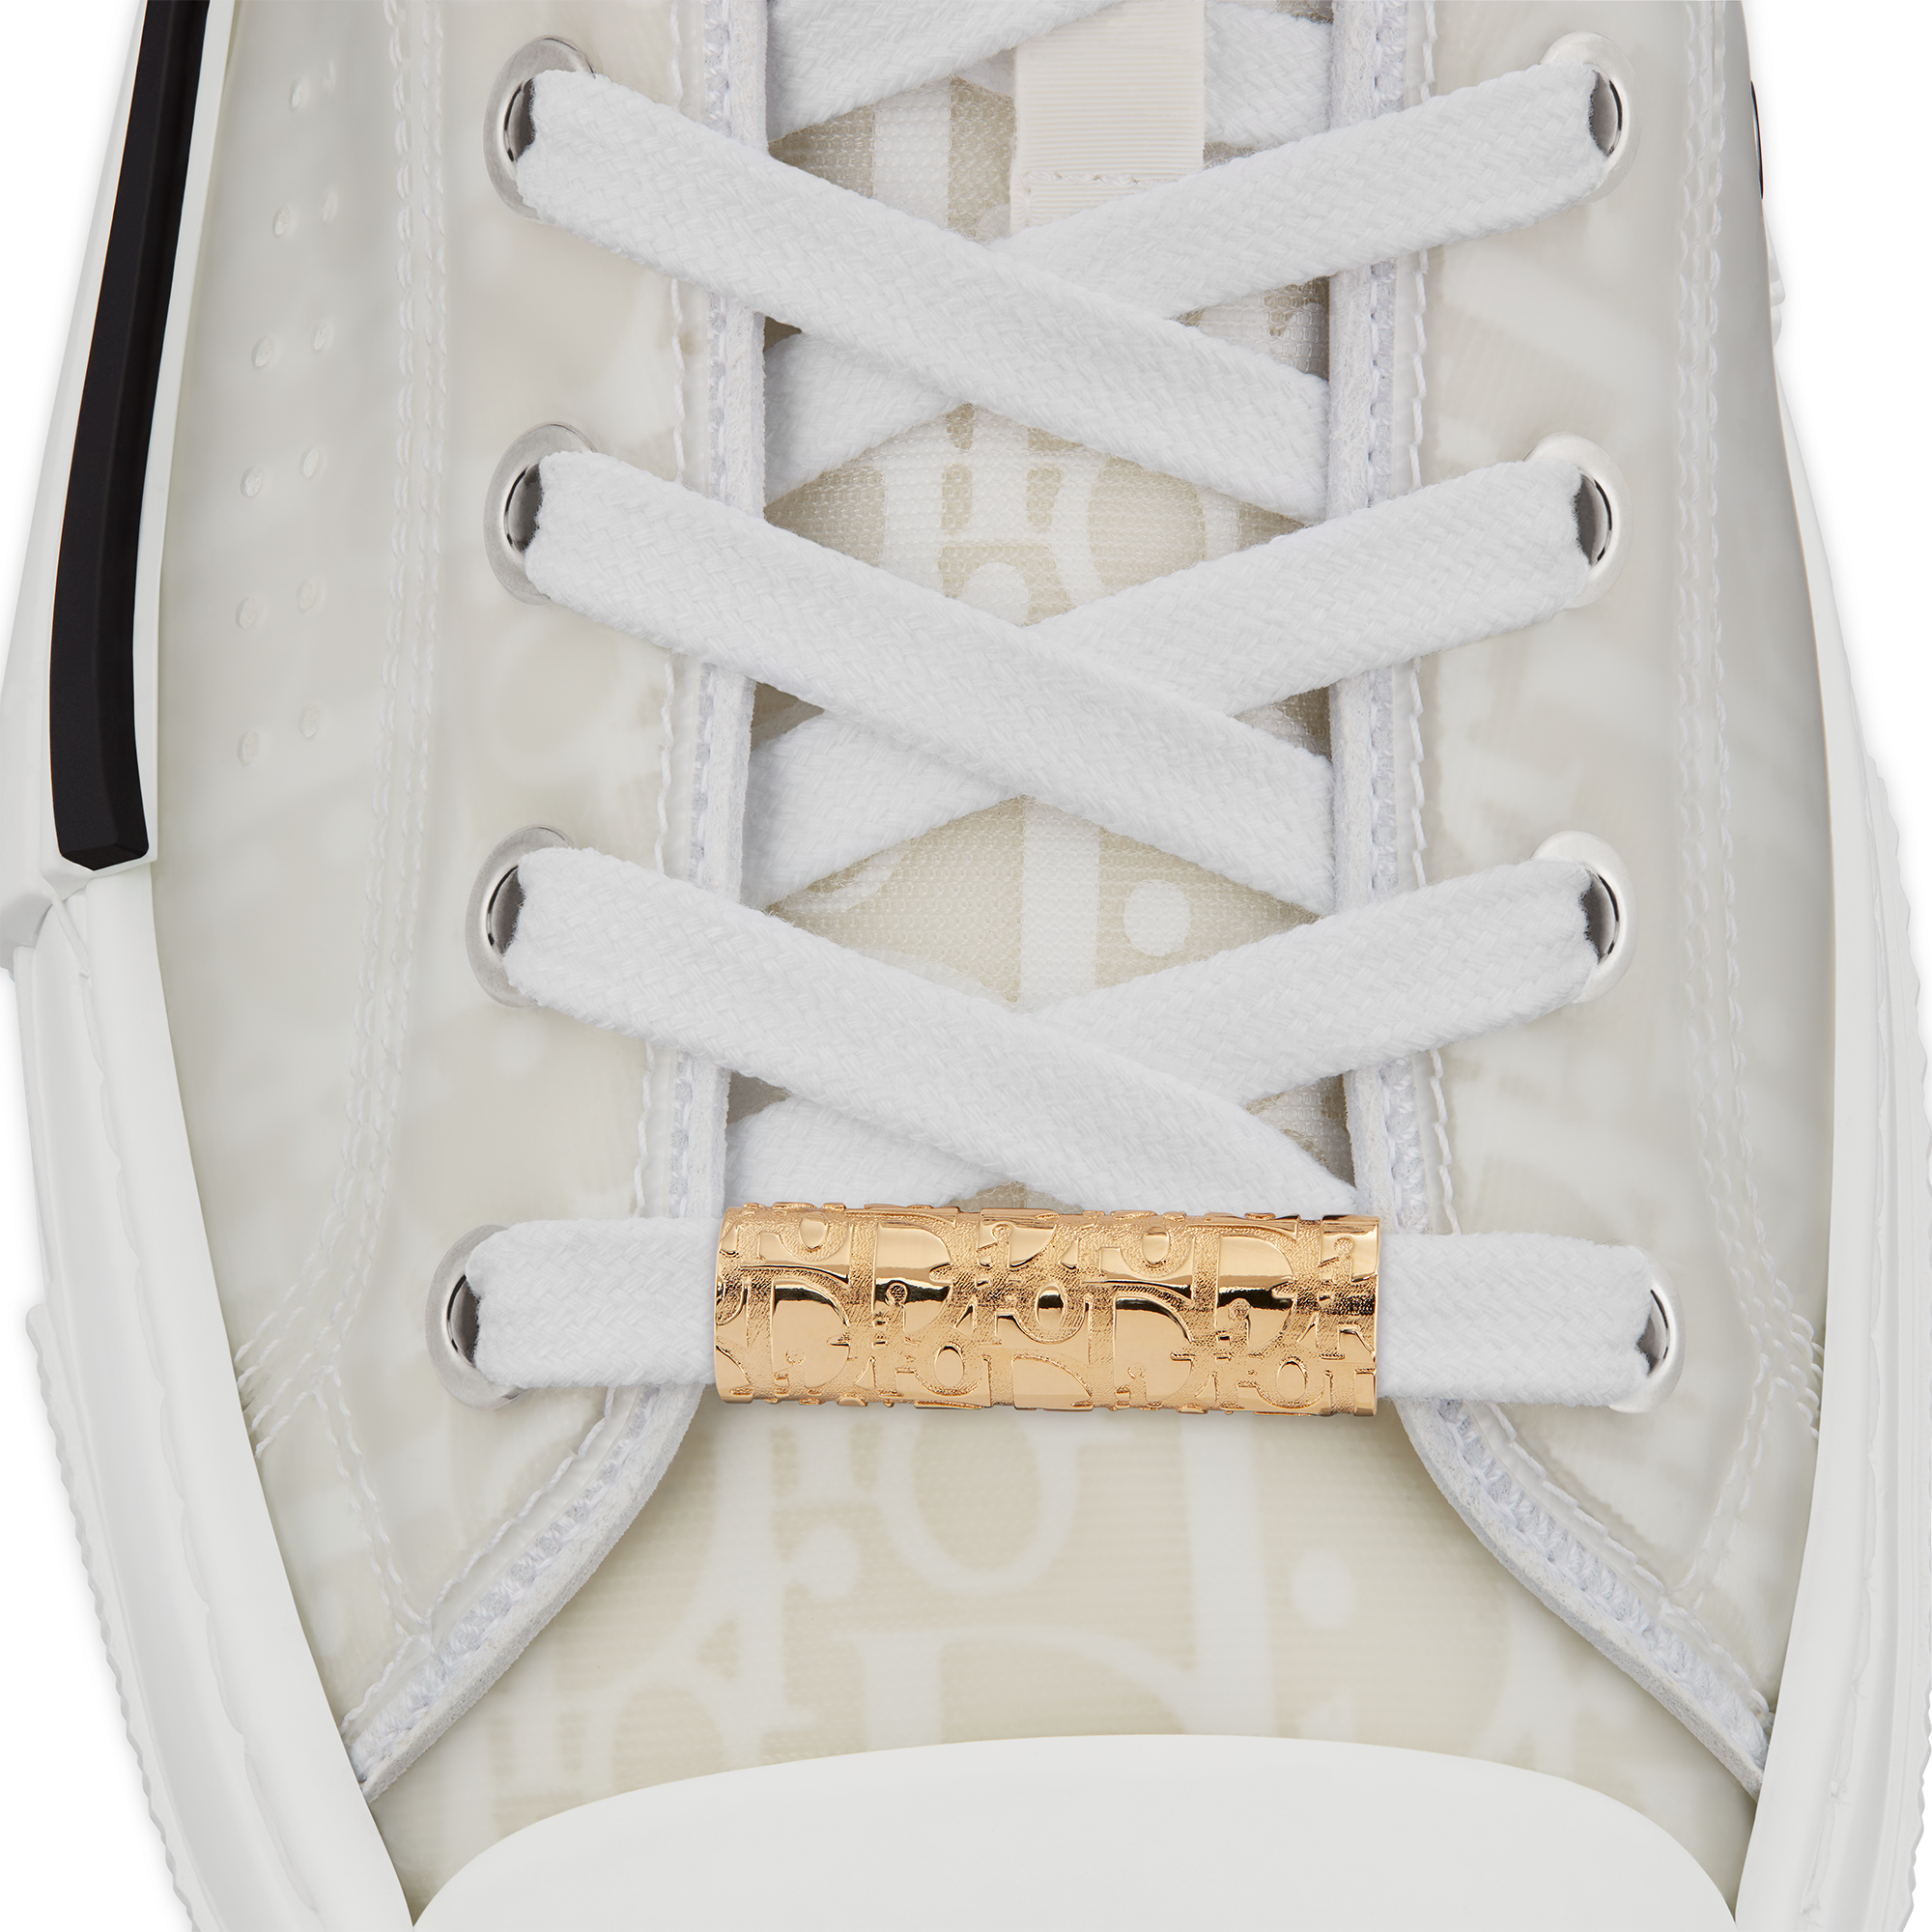 Sneaker Charm with Dior Oblique Motif Worn view cropped Open gallery